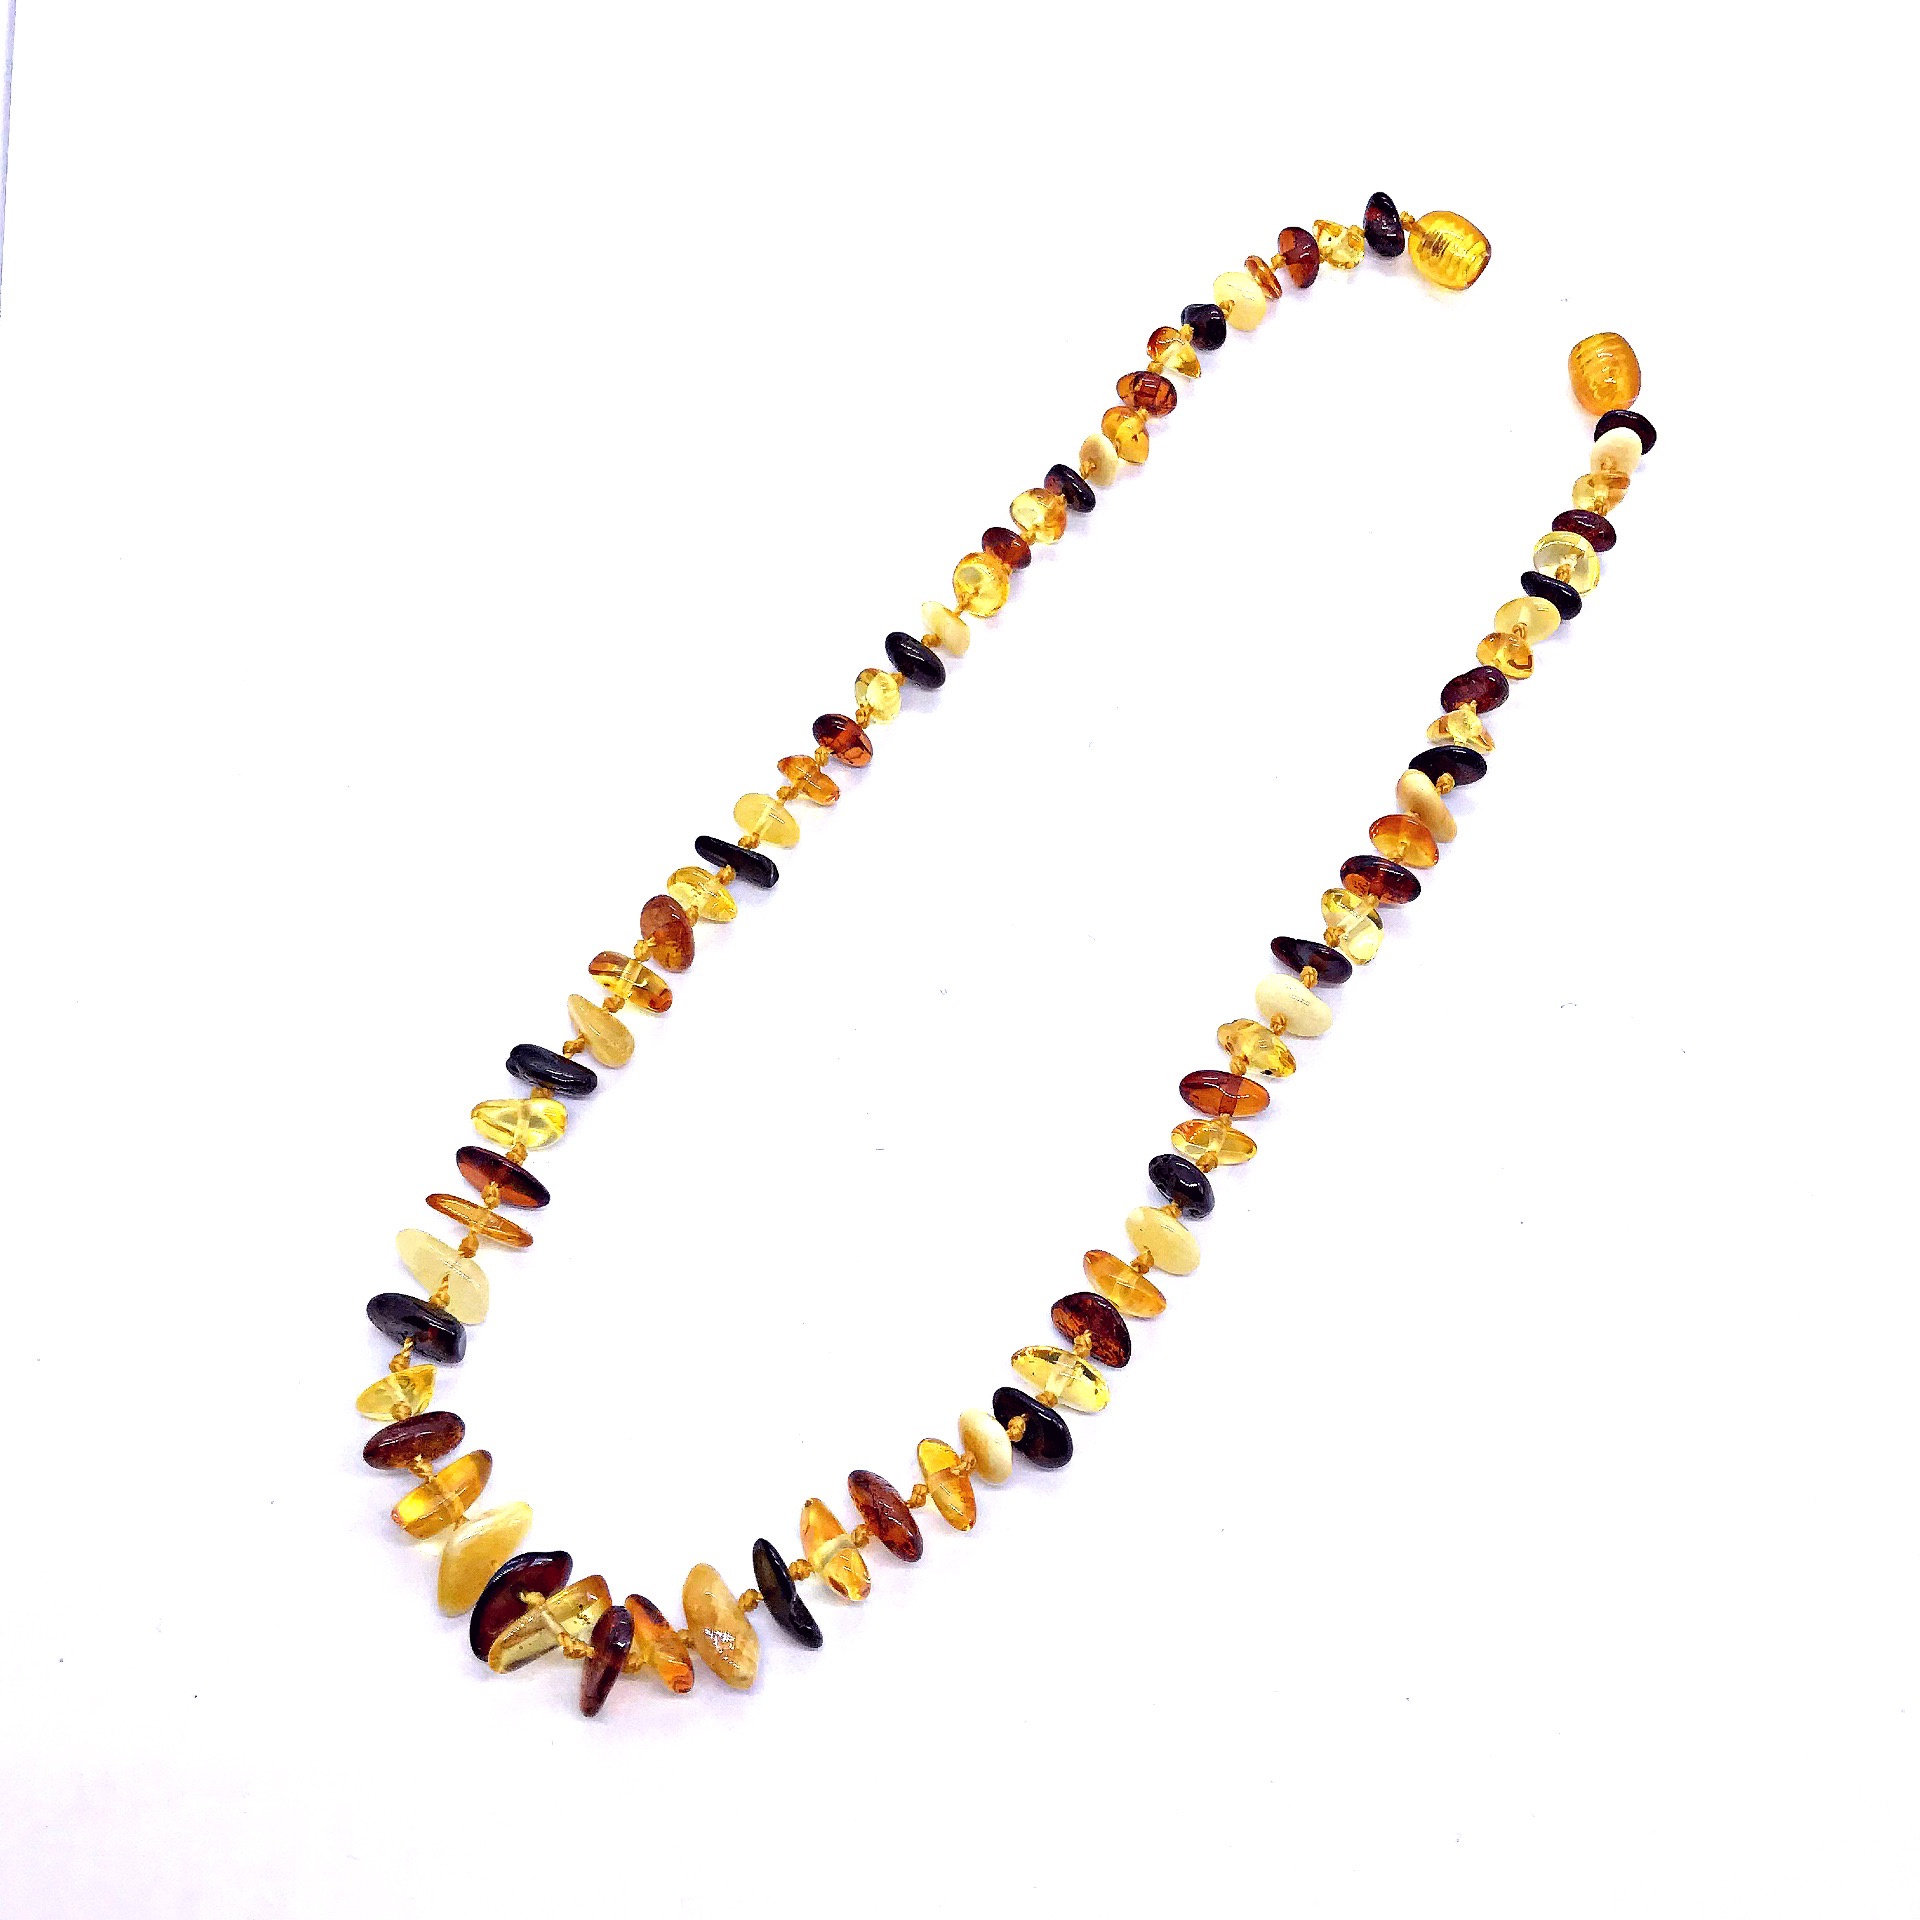 Baby/Teething Natural Baltic Amber Necklace